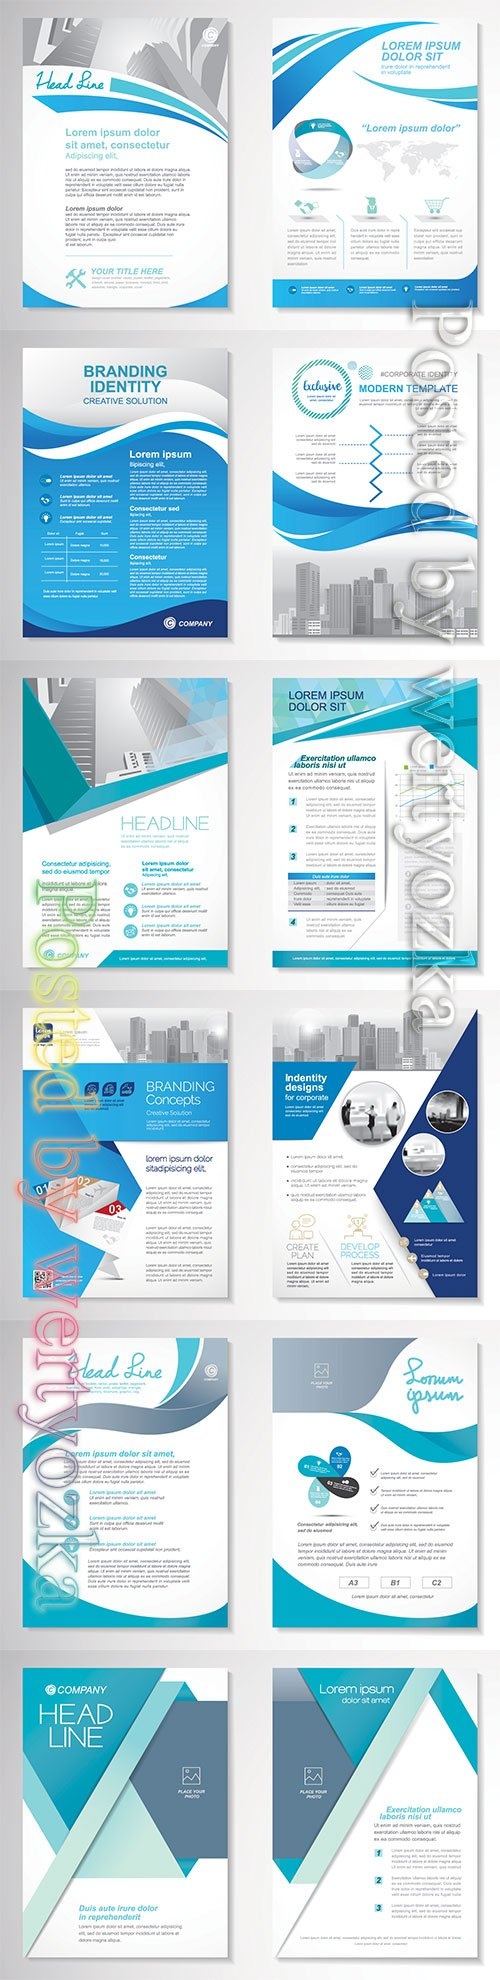 Template vector design for brochure, annual report, magazine